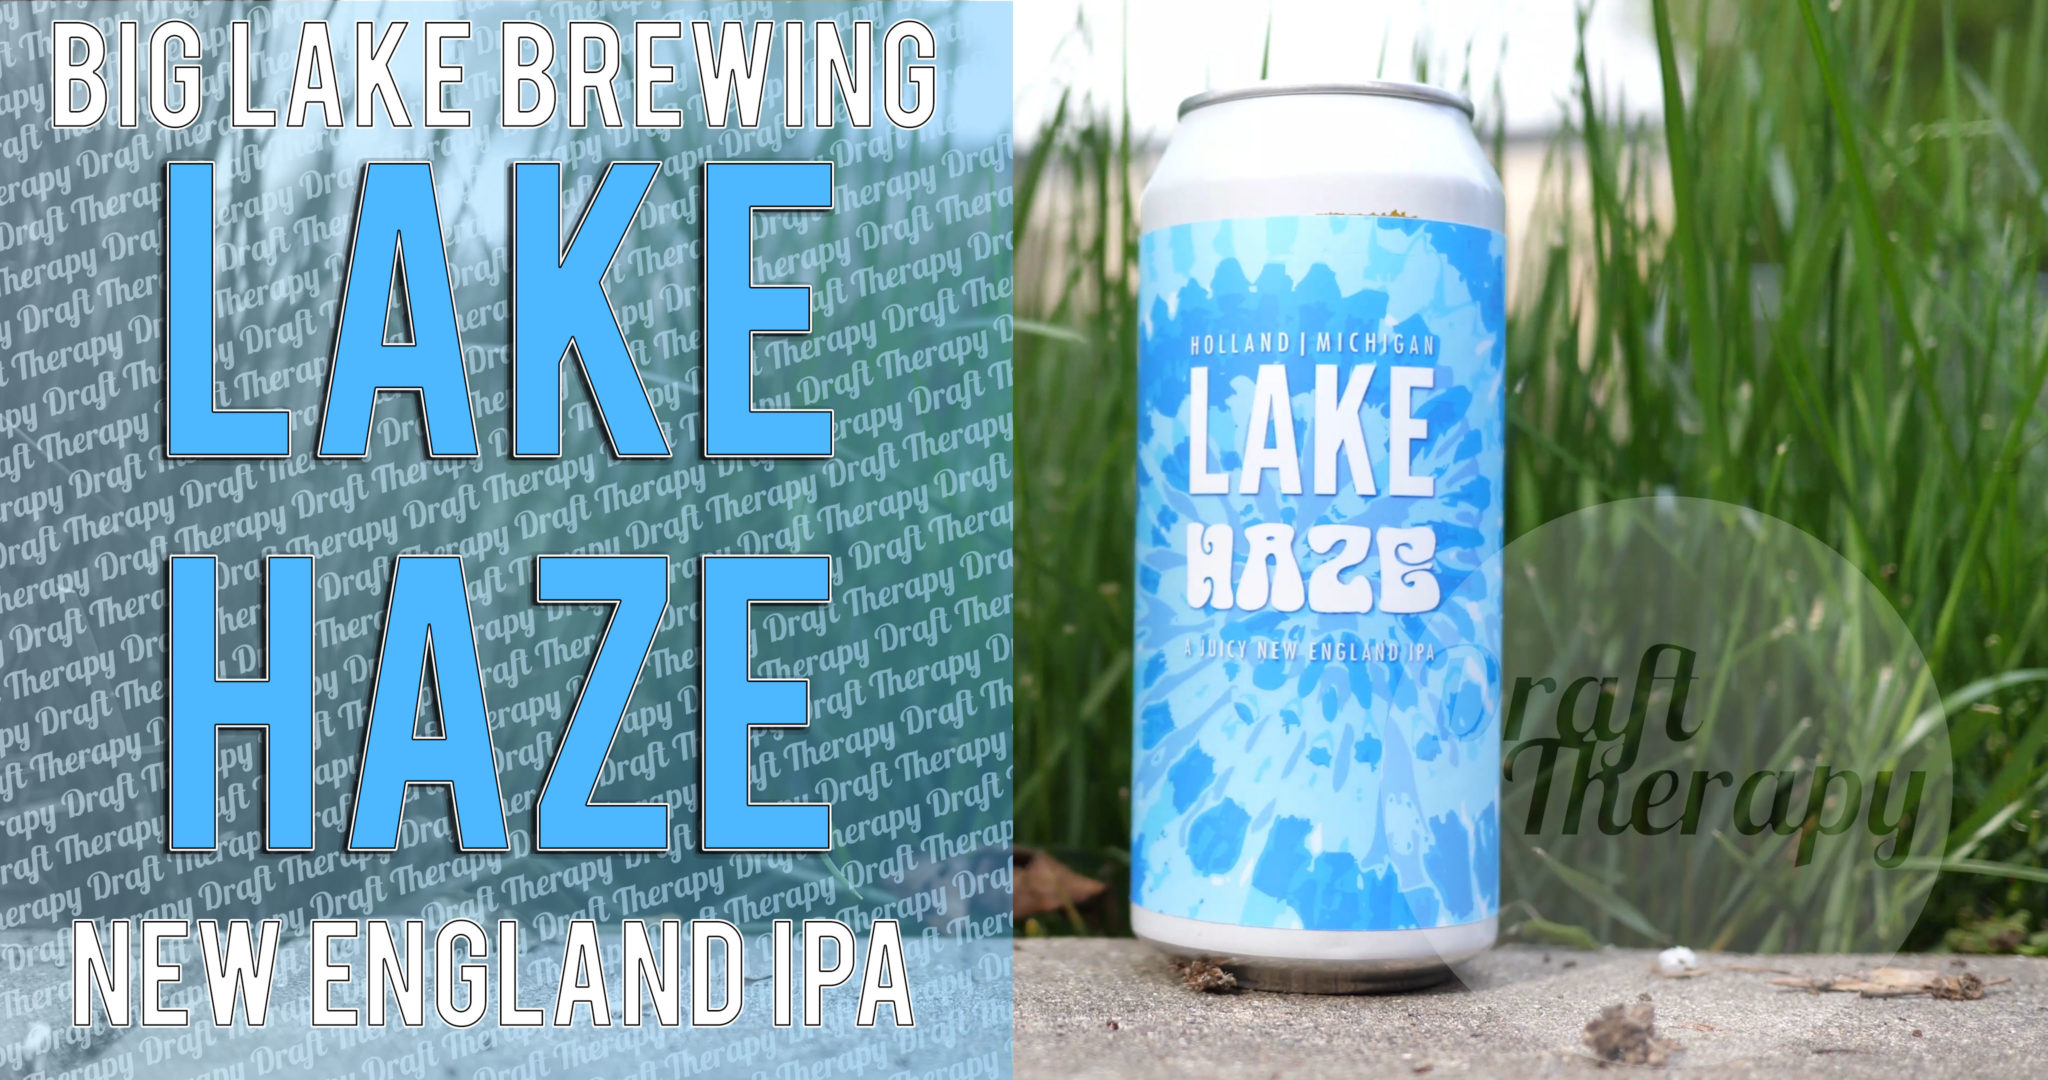 Big Lake Brewing – Lake Haze Juicy New England IPA